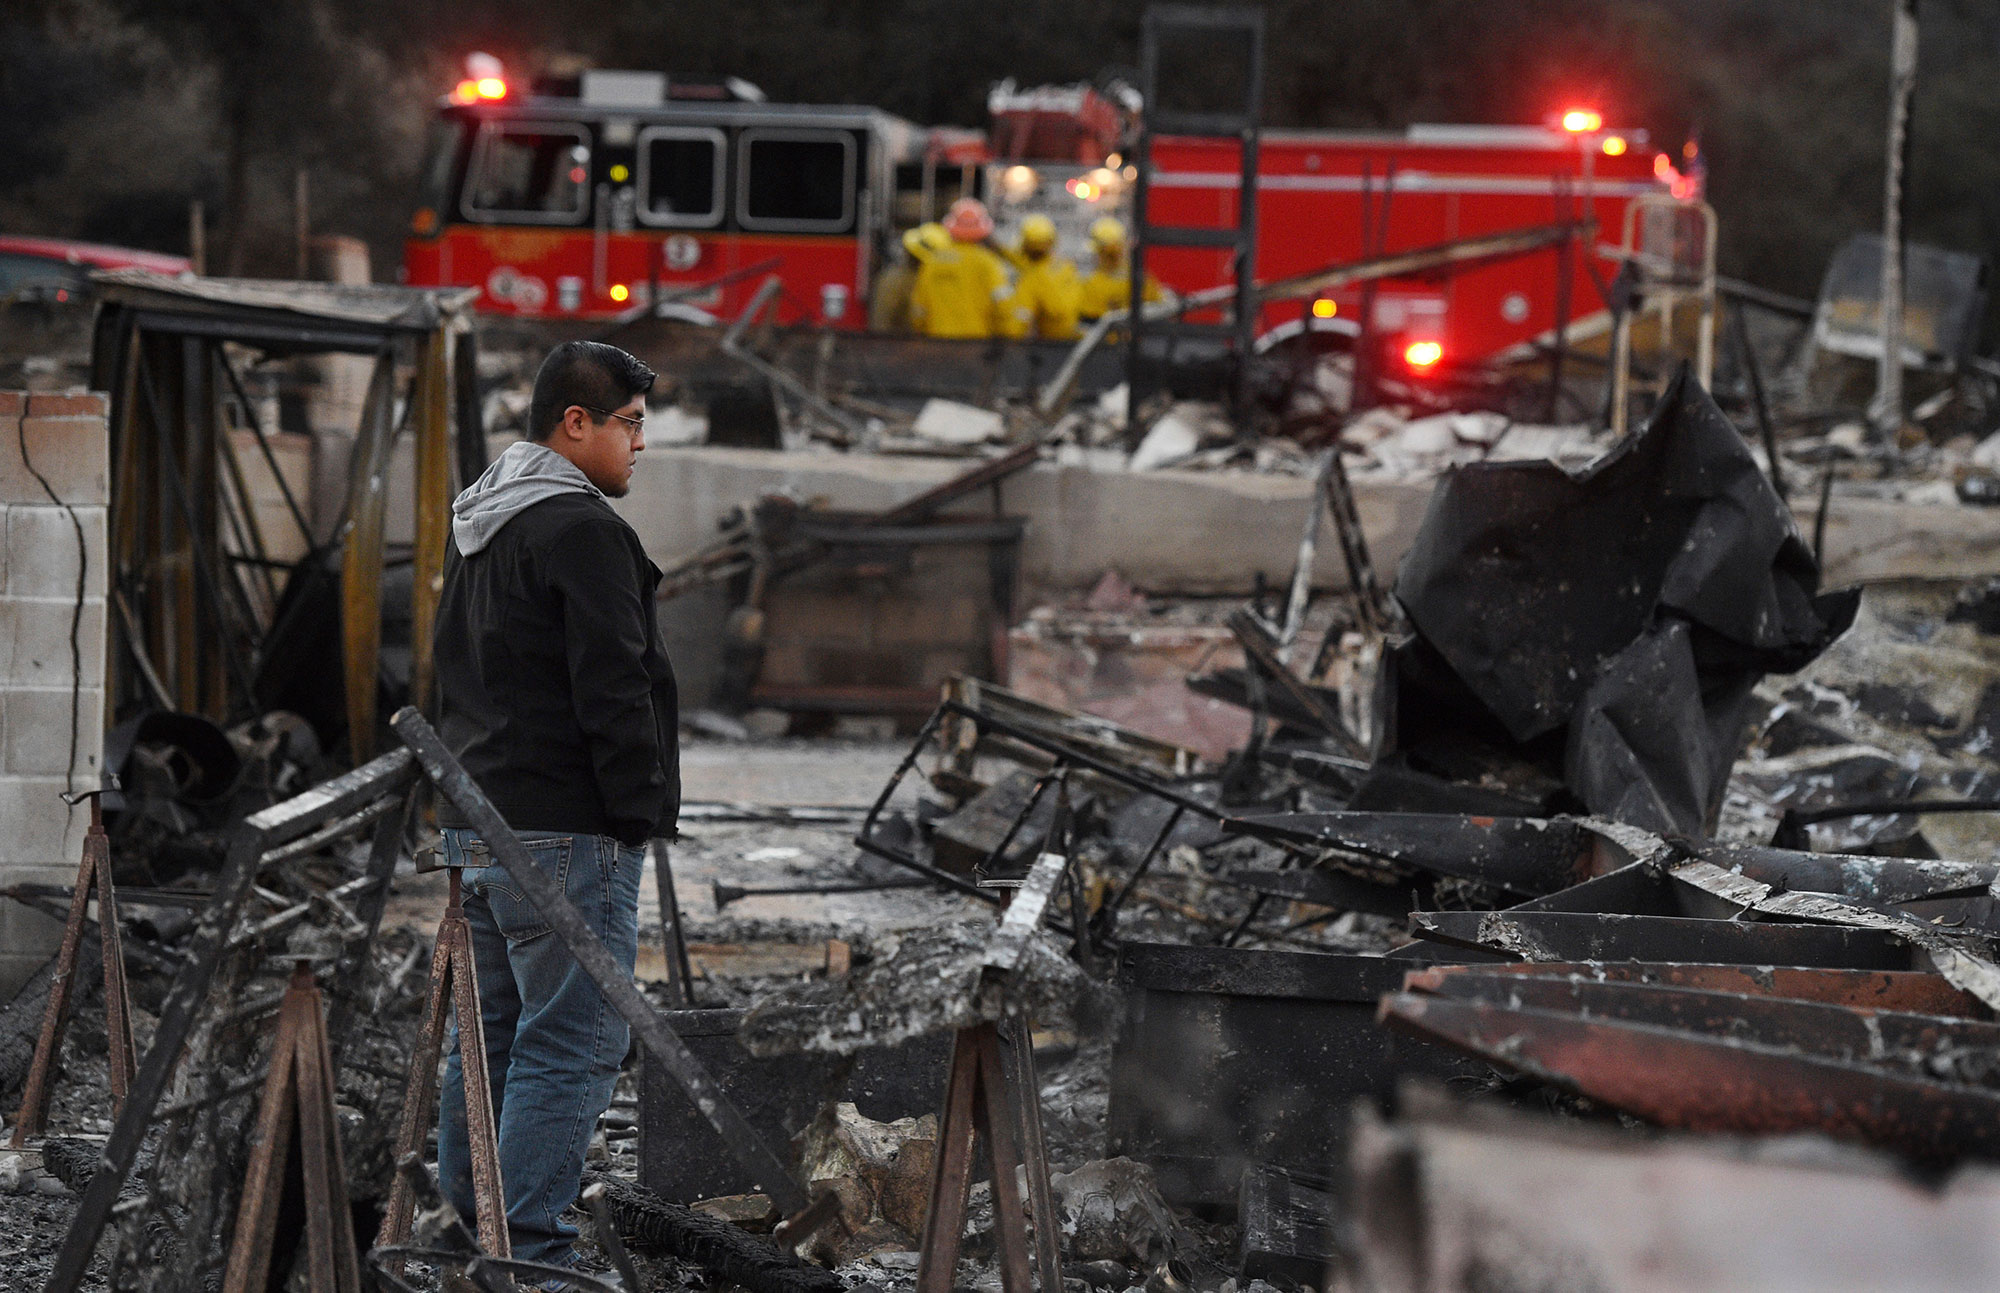 <div class='meta'><div class='origin-logo' data-origin='none'></div><span class='caption-text' data-credit='Chris Pizzello/AP Photo'>Ricky Alvarado looks over the charred remains of his home at the Seminole Springs Mobile Home Park, Sunday, Nov. 11, 2018.</span></div>